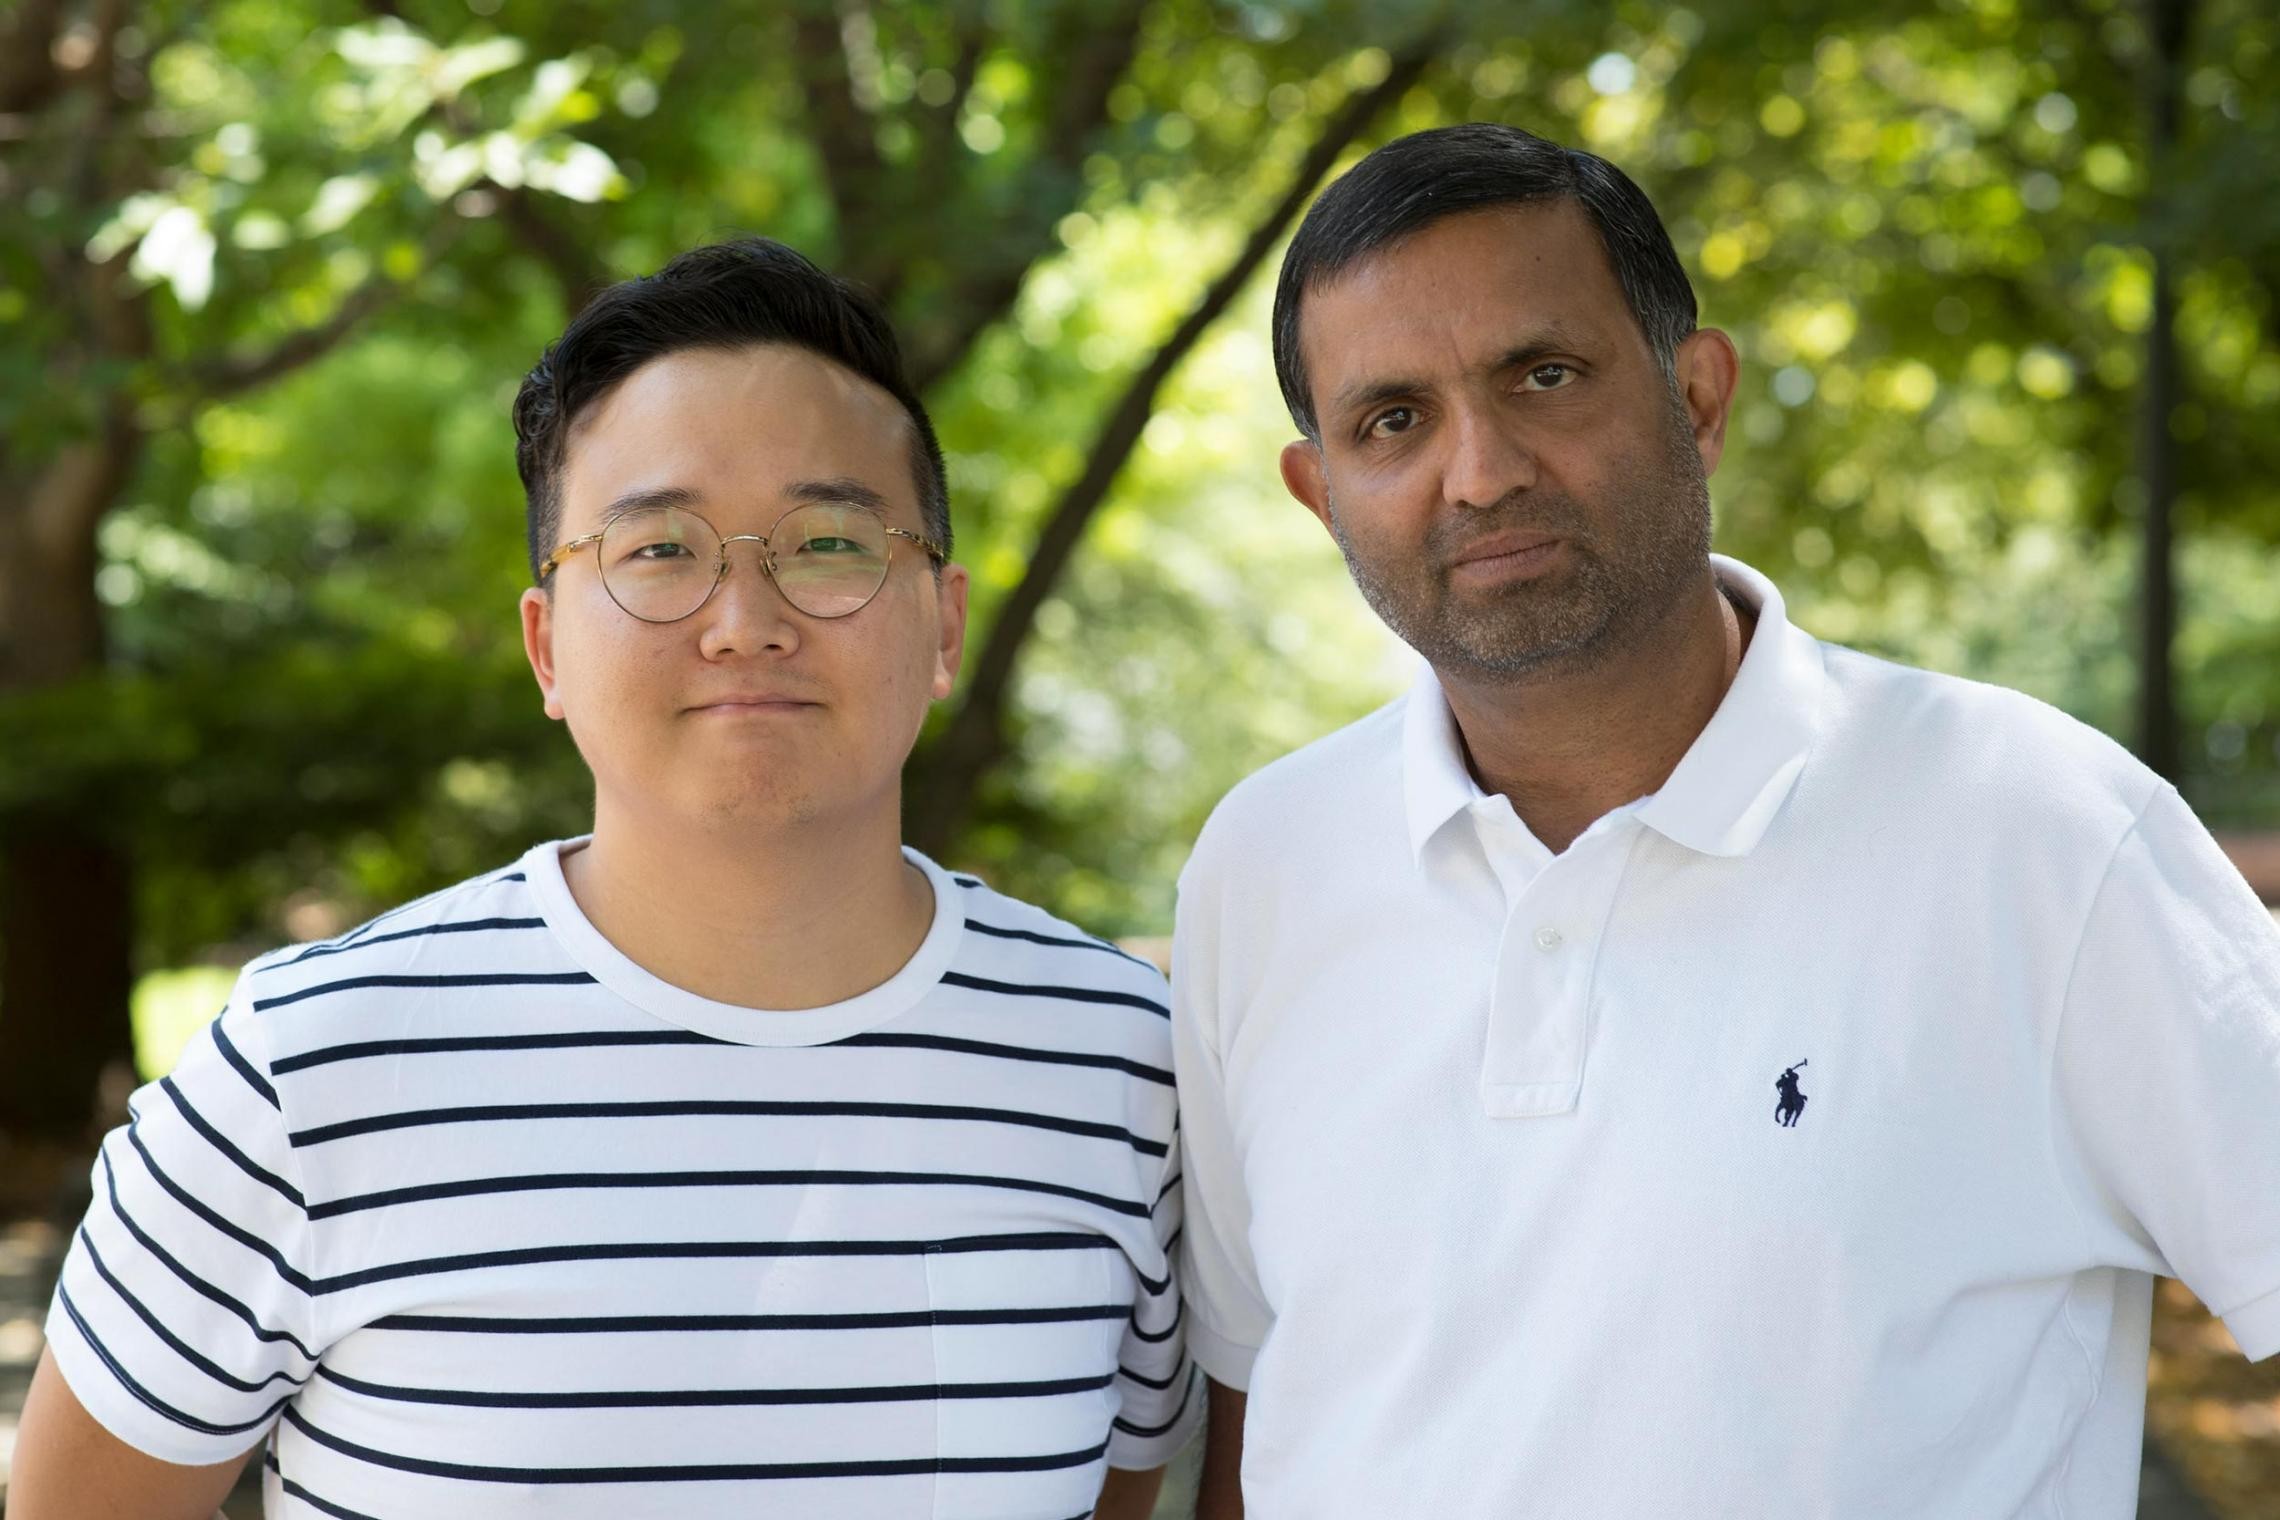 Engineering doctoral student Hyunglok Kim, left, has been selected for the first class of Future Investigators in NASA Earth and Space Science and Technology. His adviser is Venkataraman Lakshmi, right.